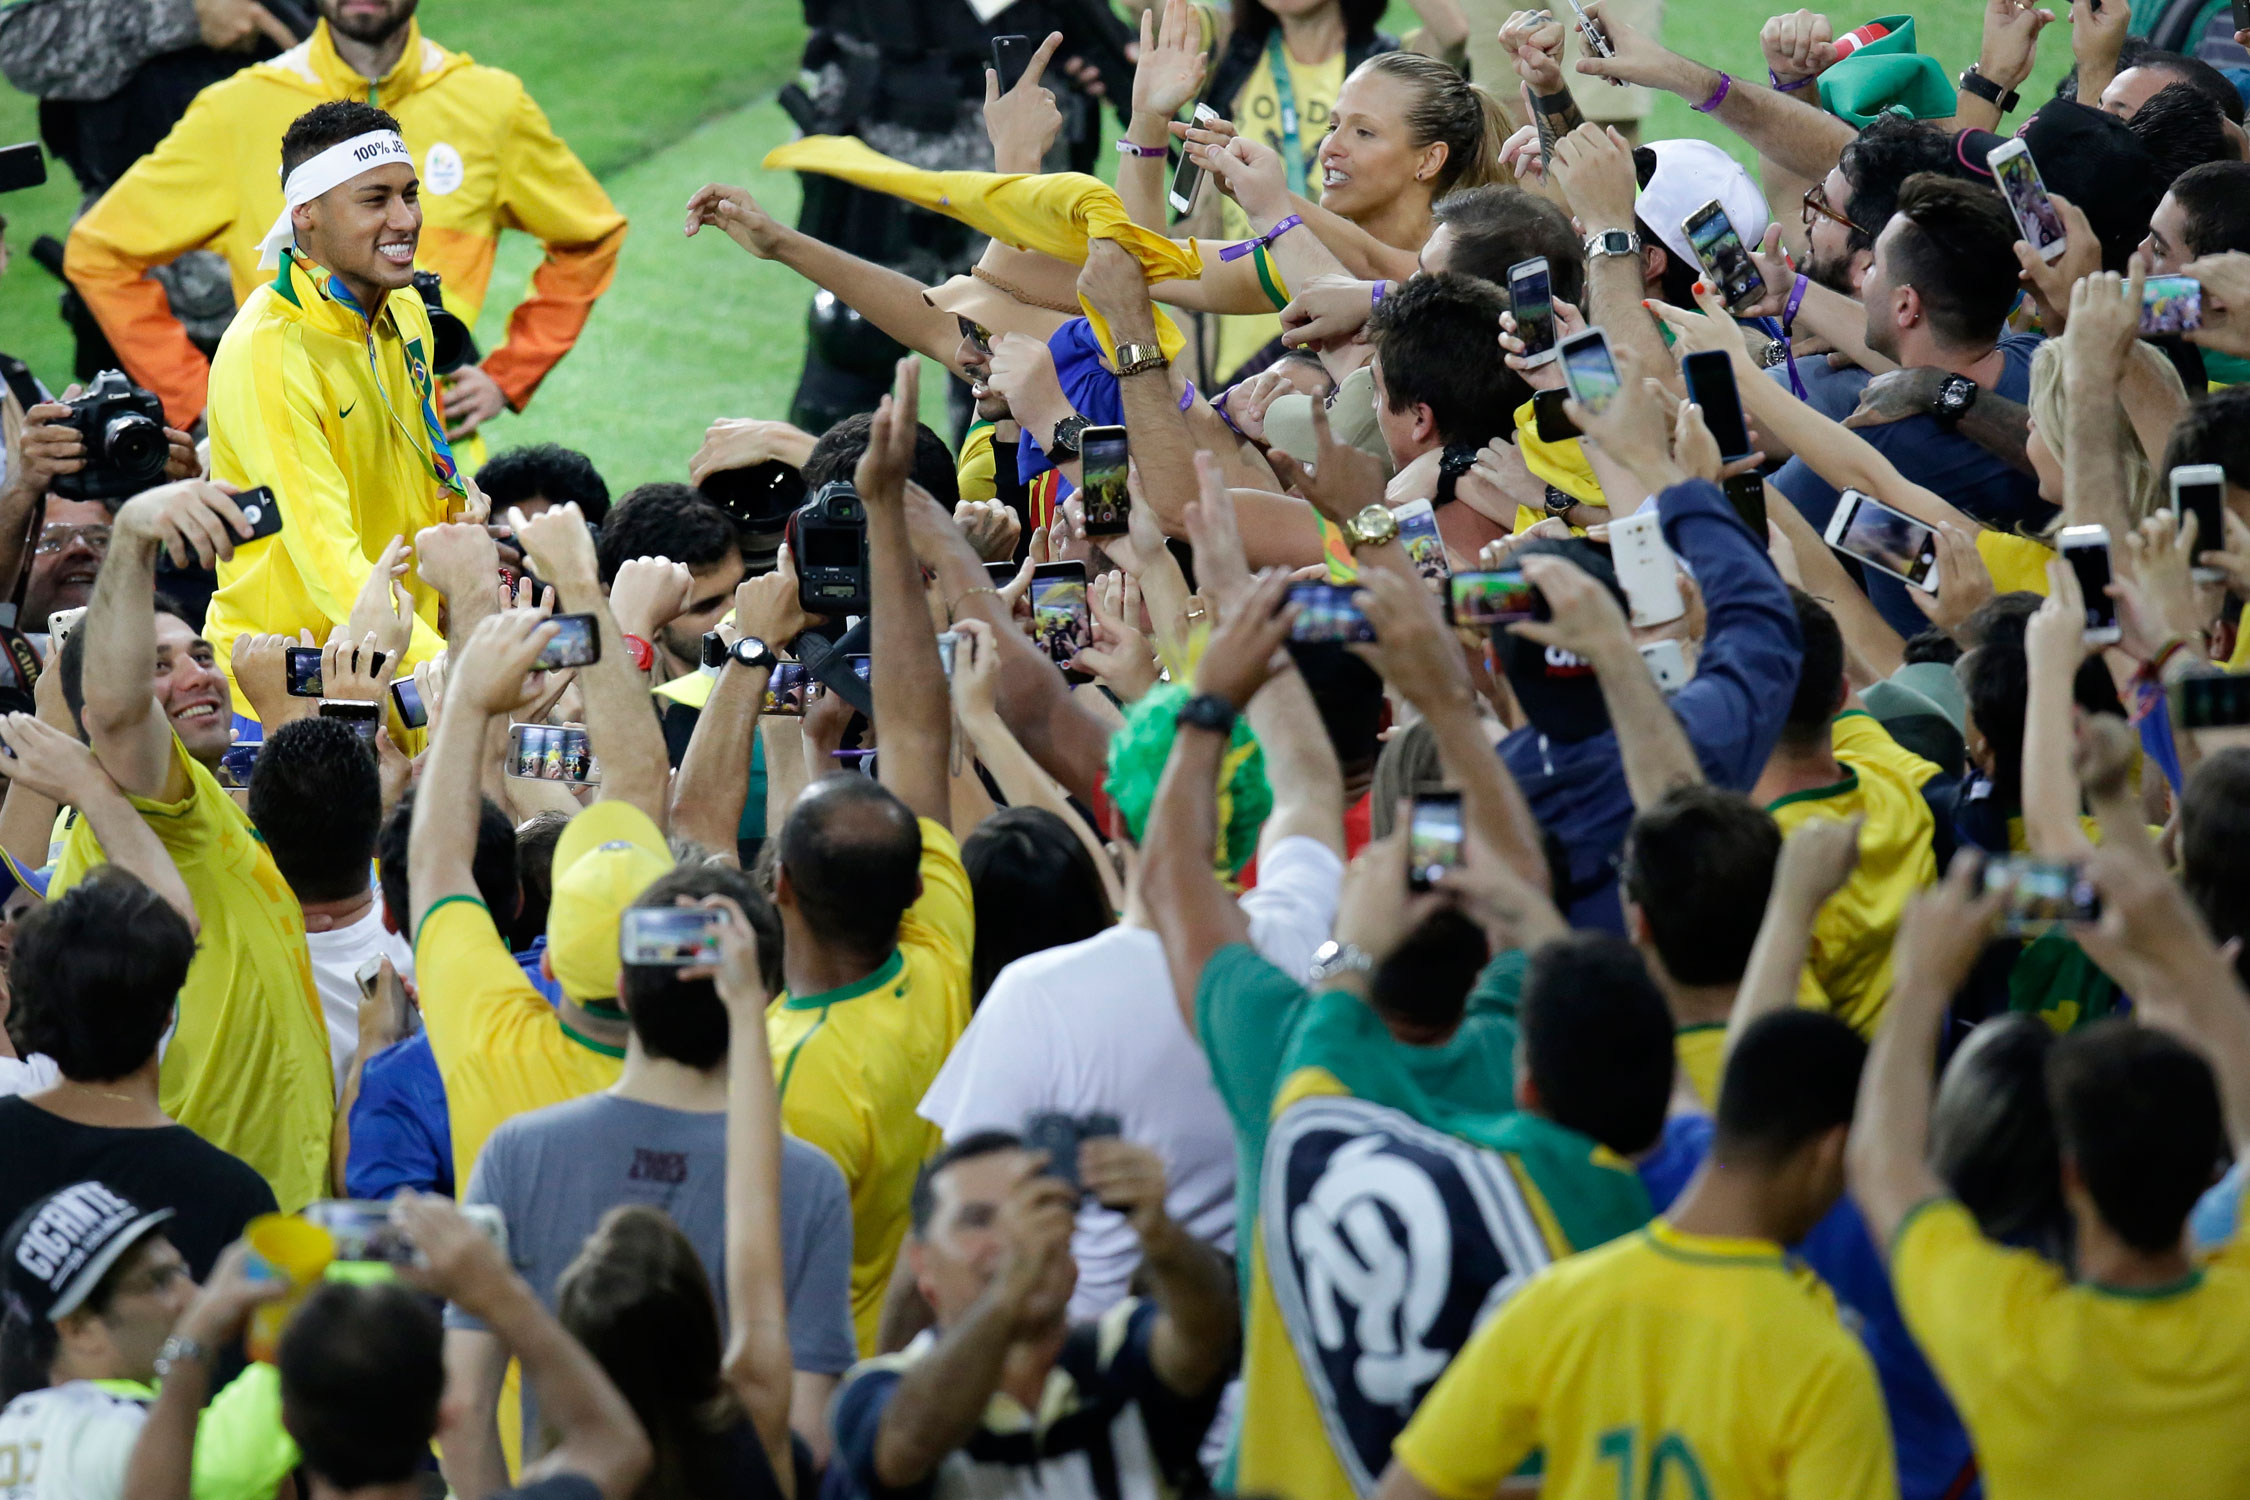 Neymar soaks up the love after leading Brazil to the Olympic gold medal at the Maracanã in Rio de Janeiro